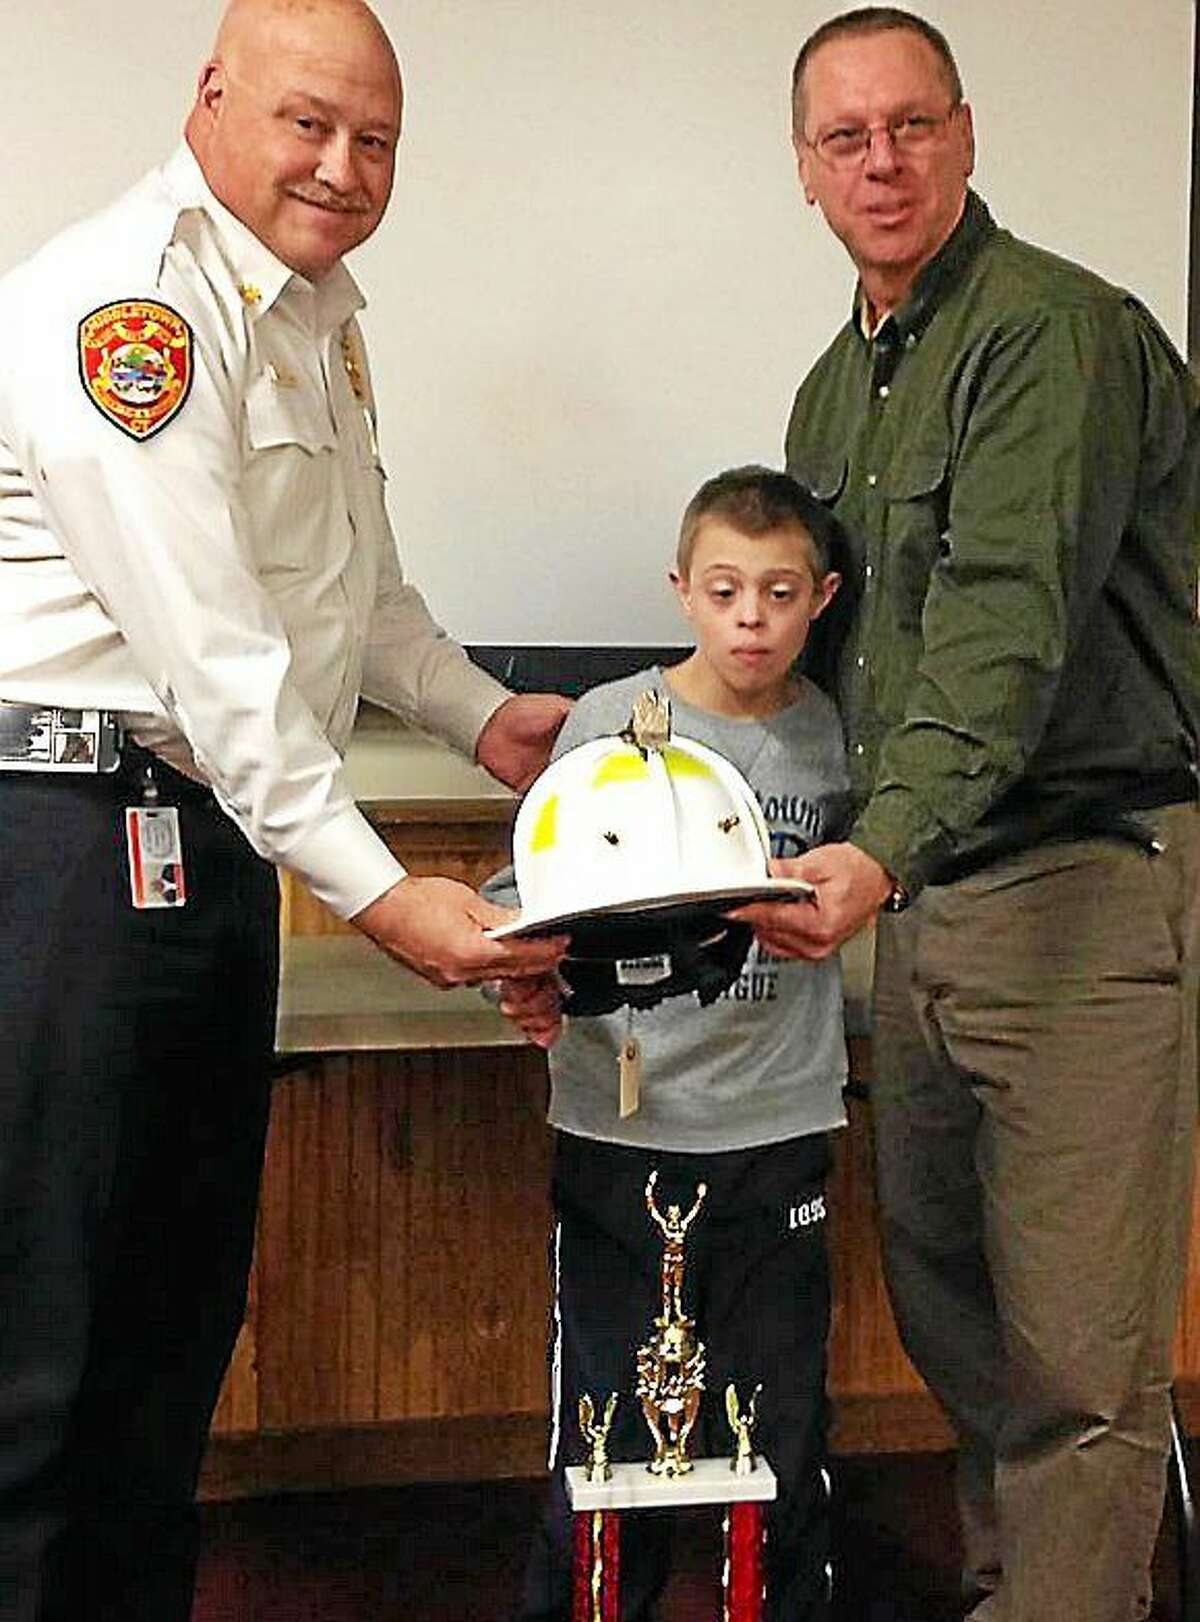 Middletown Fire Department Chief Robert Kronenberger joins Battalion Chief Ernie Cantwell and Cantwell's son, Benjamin. On display is a white leather fire helmet won by Cantwell, along with the title of biggest loser, in a department fitness challenge.